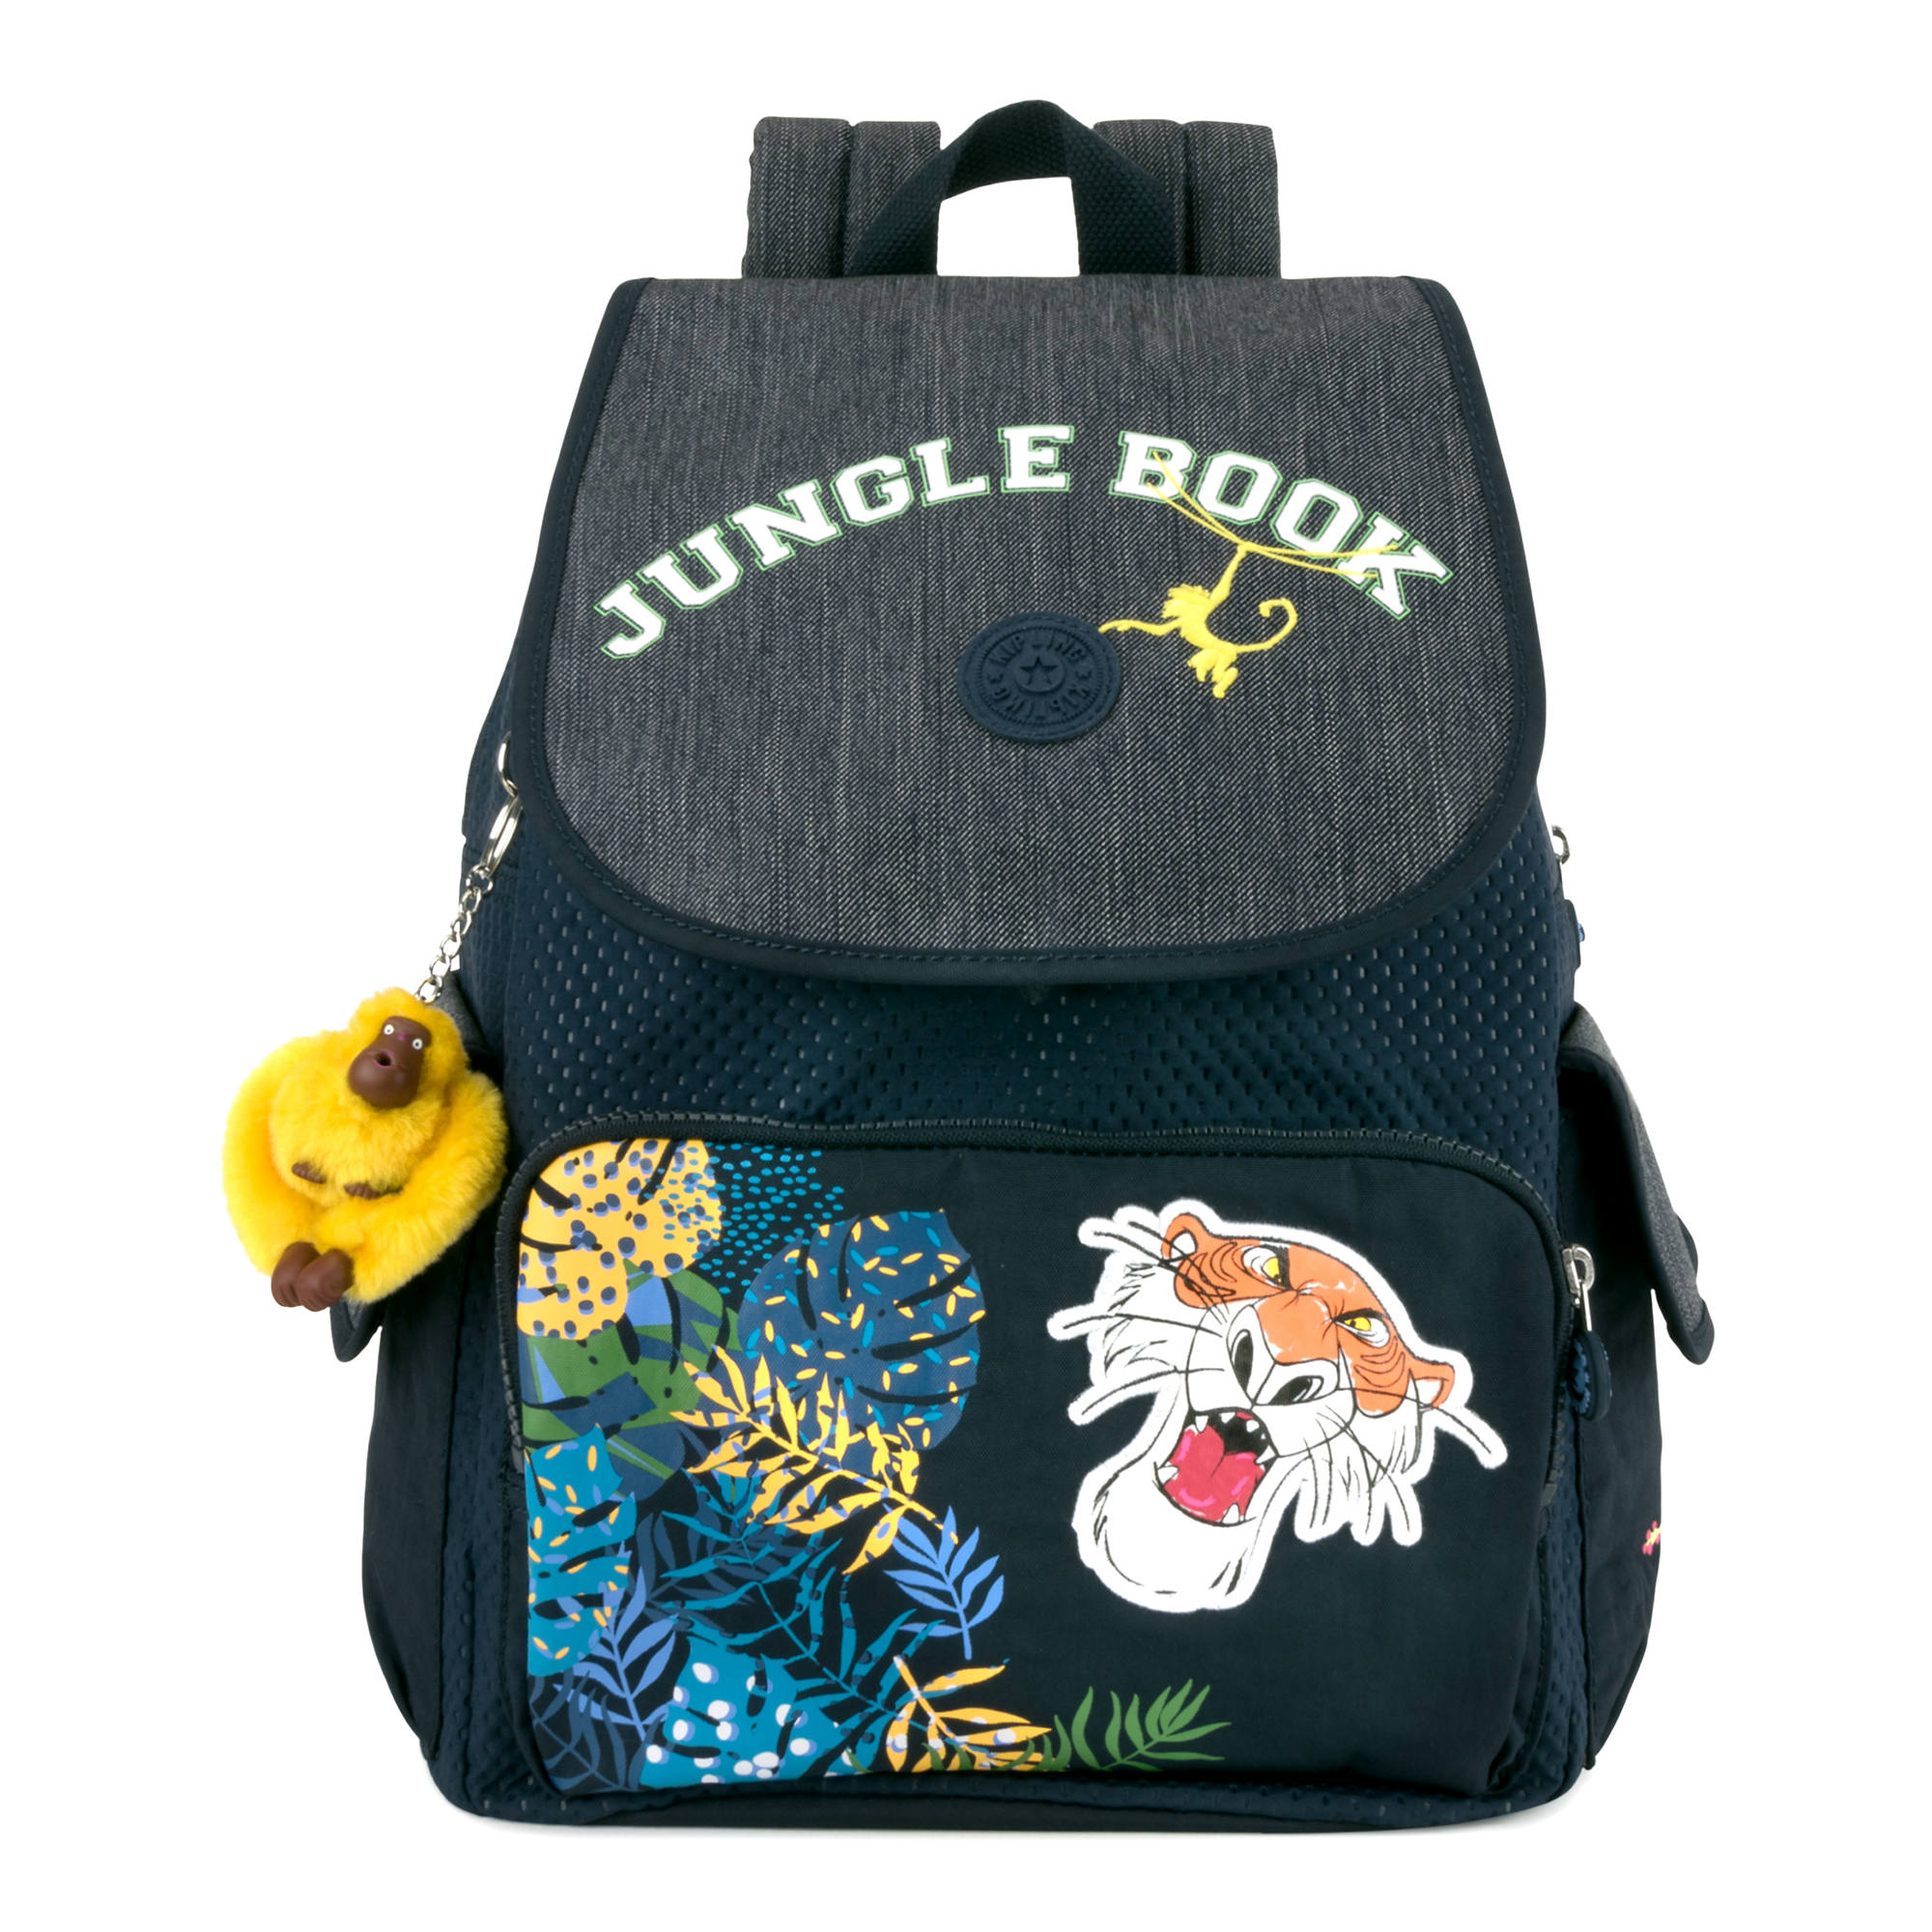 Disney S Jungle Book City Pack Medium Backpack Into The Large